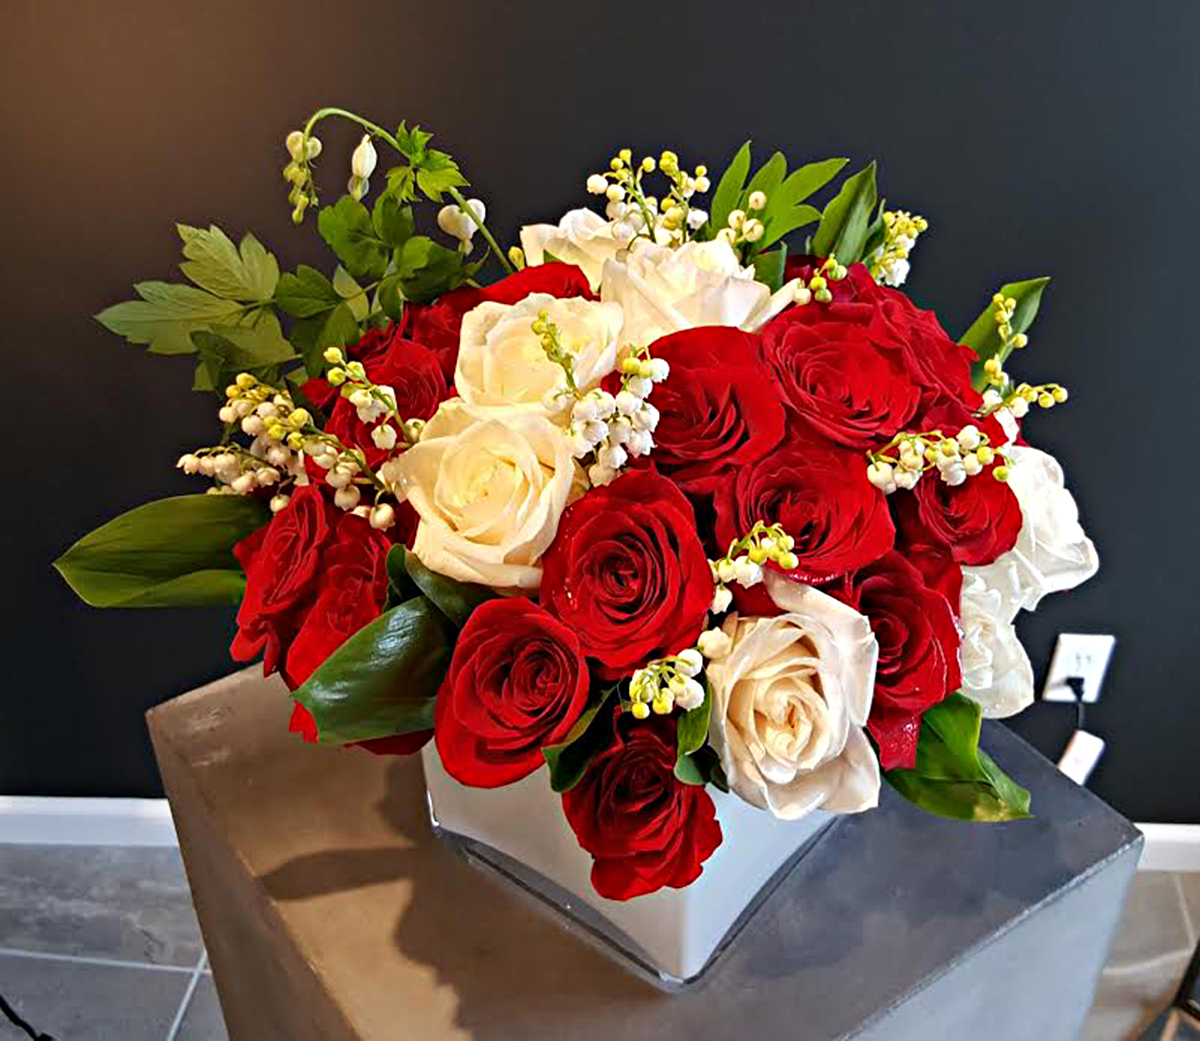 Flowers for restaurant decor by Bouquets & Beyond